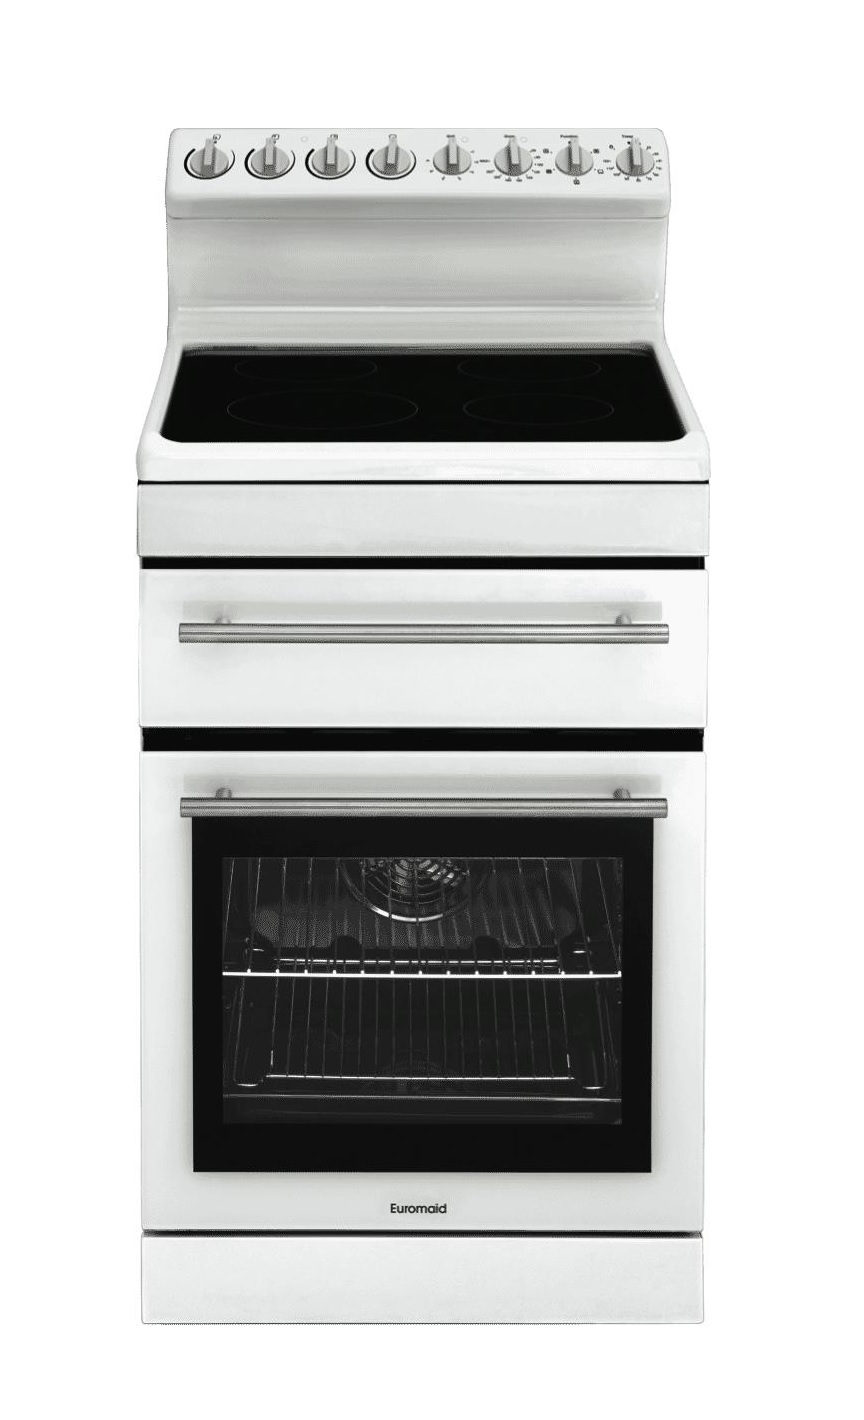 Euromaid GG54RCW Oven